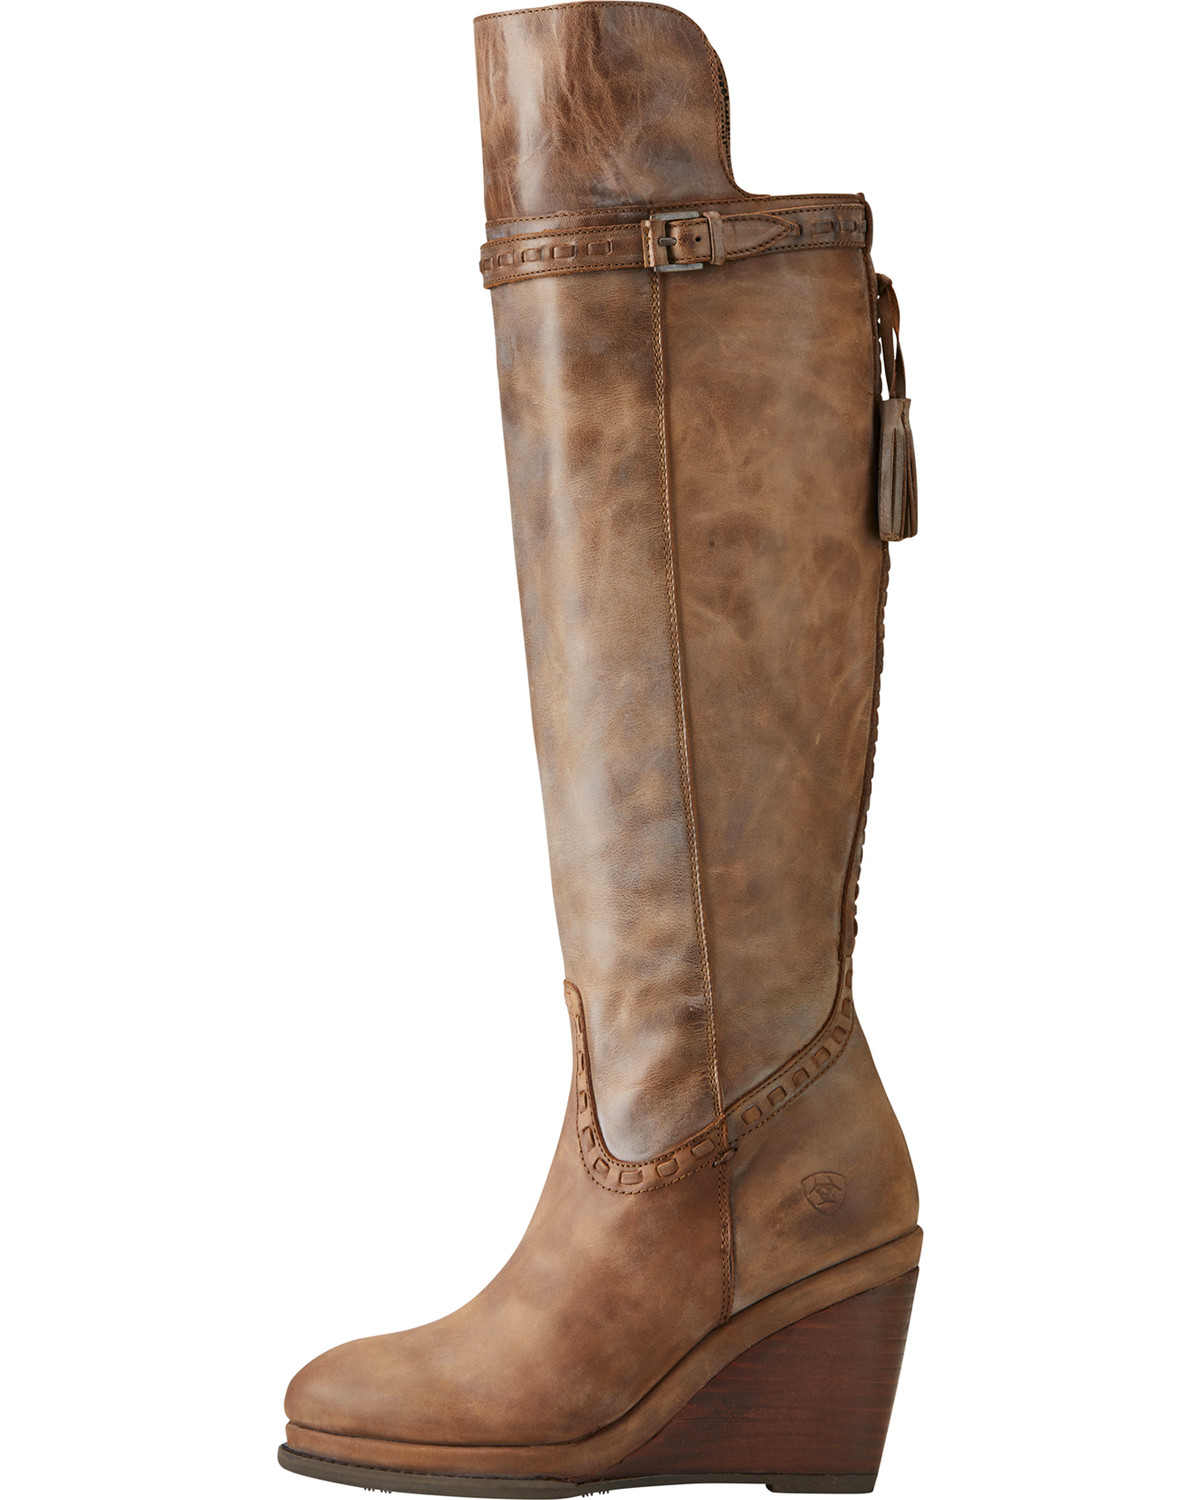 a9b95ae80f0c Ariat Women s Knoxville Tan Tall Wedge Boots - Round Toe